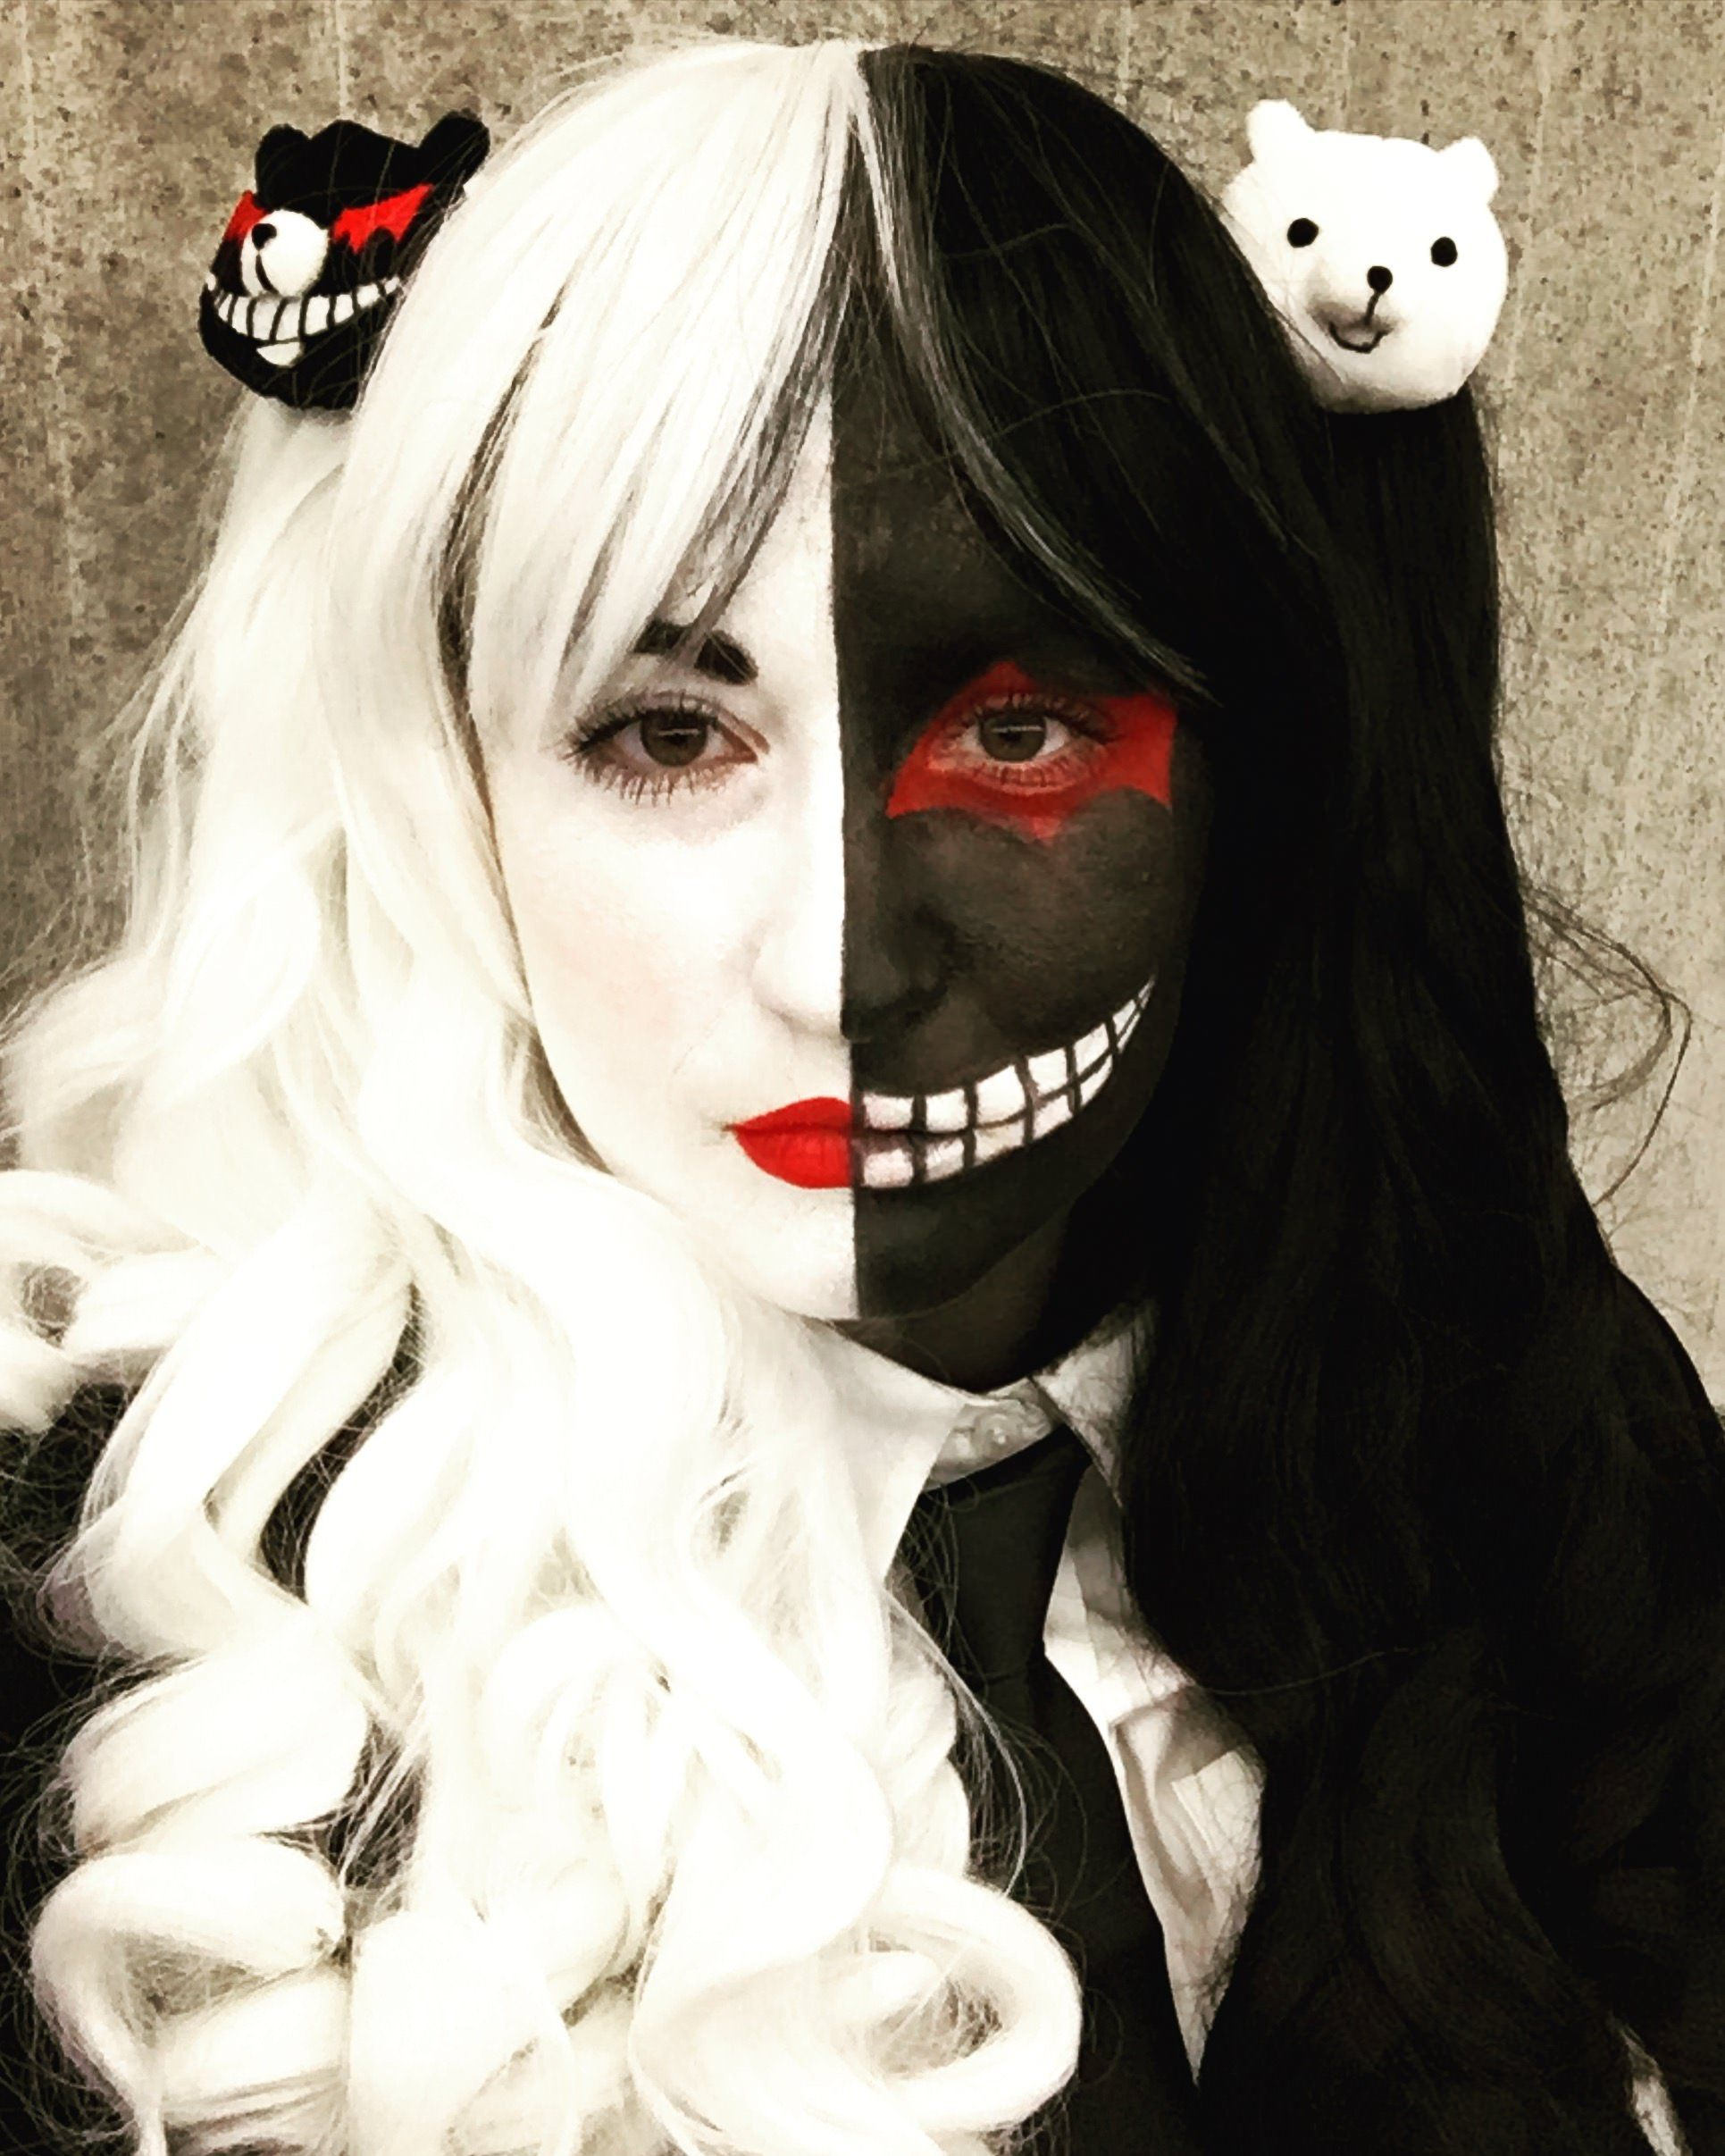 Self Female Monokuma From Danganronpa For Nycc My First Time Trying Full Face Paint Cosplay Danganronpa Cosplay Cosplay Tutorial